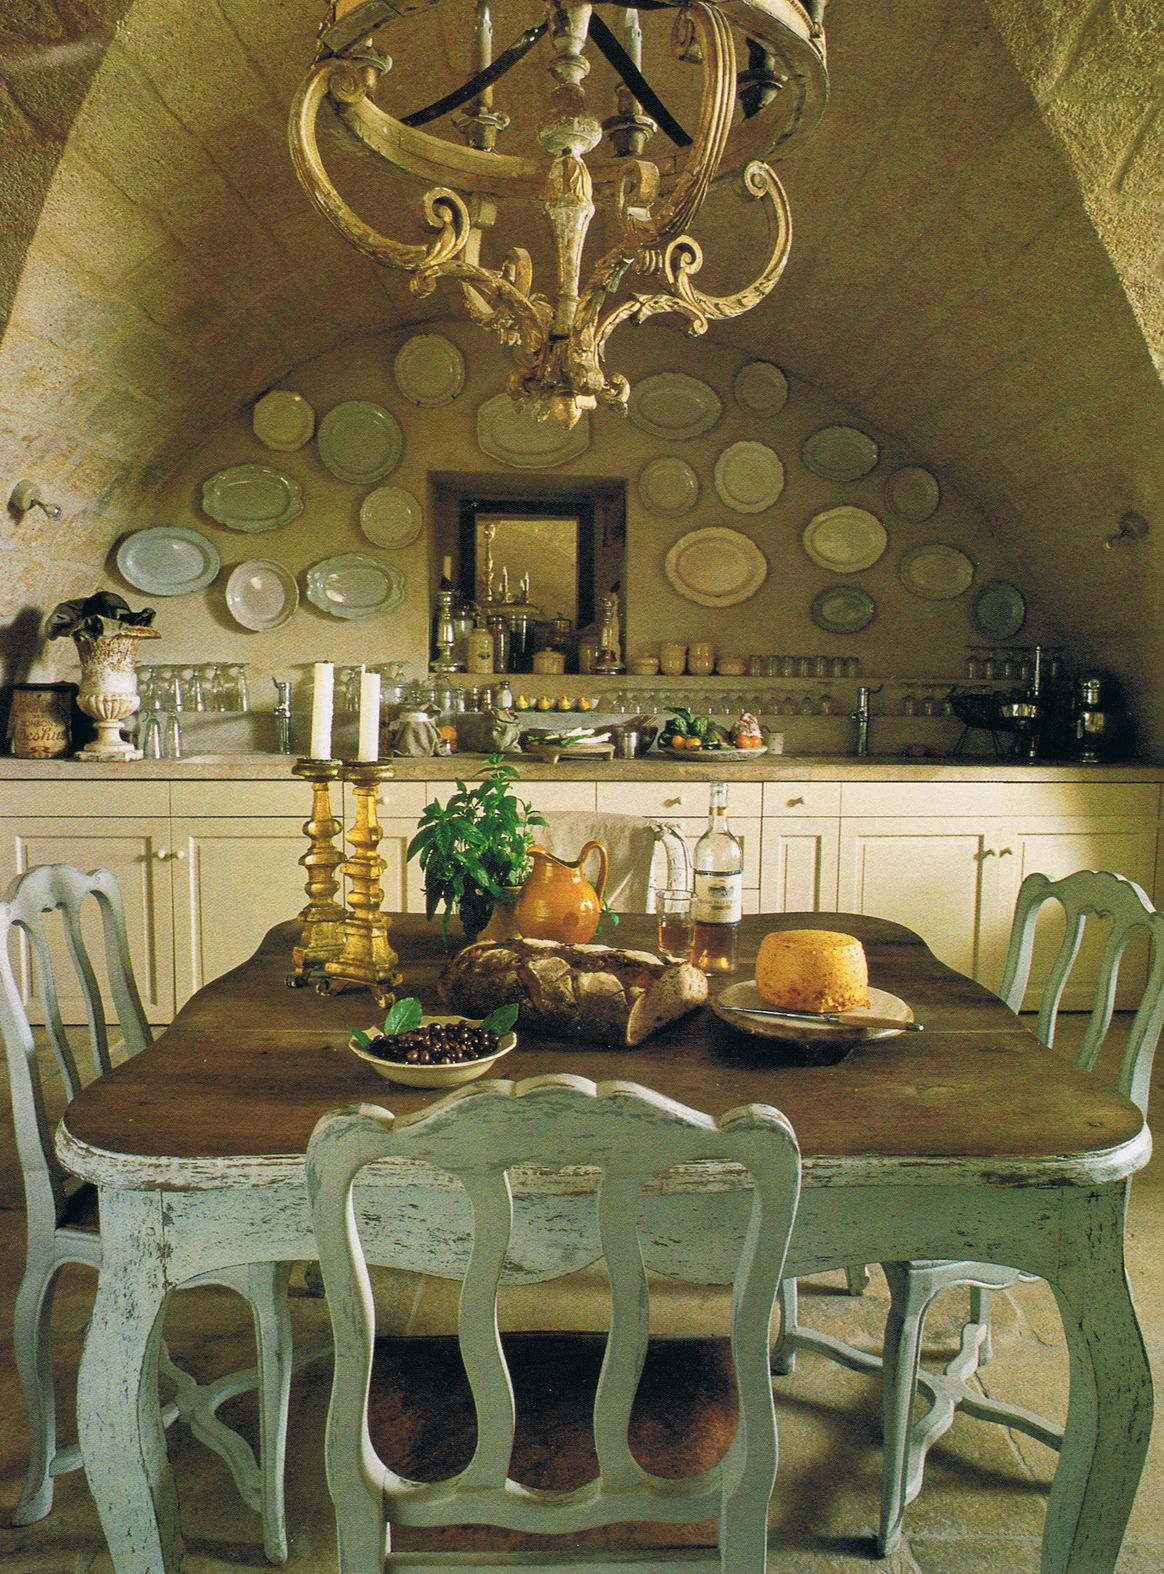 Vaulted ceiling in kitchen… baroque gilded chandelier over 19th century Swedish table    and 18th century French chairs…wall decorated with Moustiers and Sarreguemine faience plates…